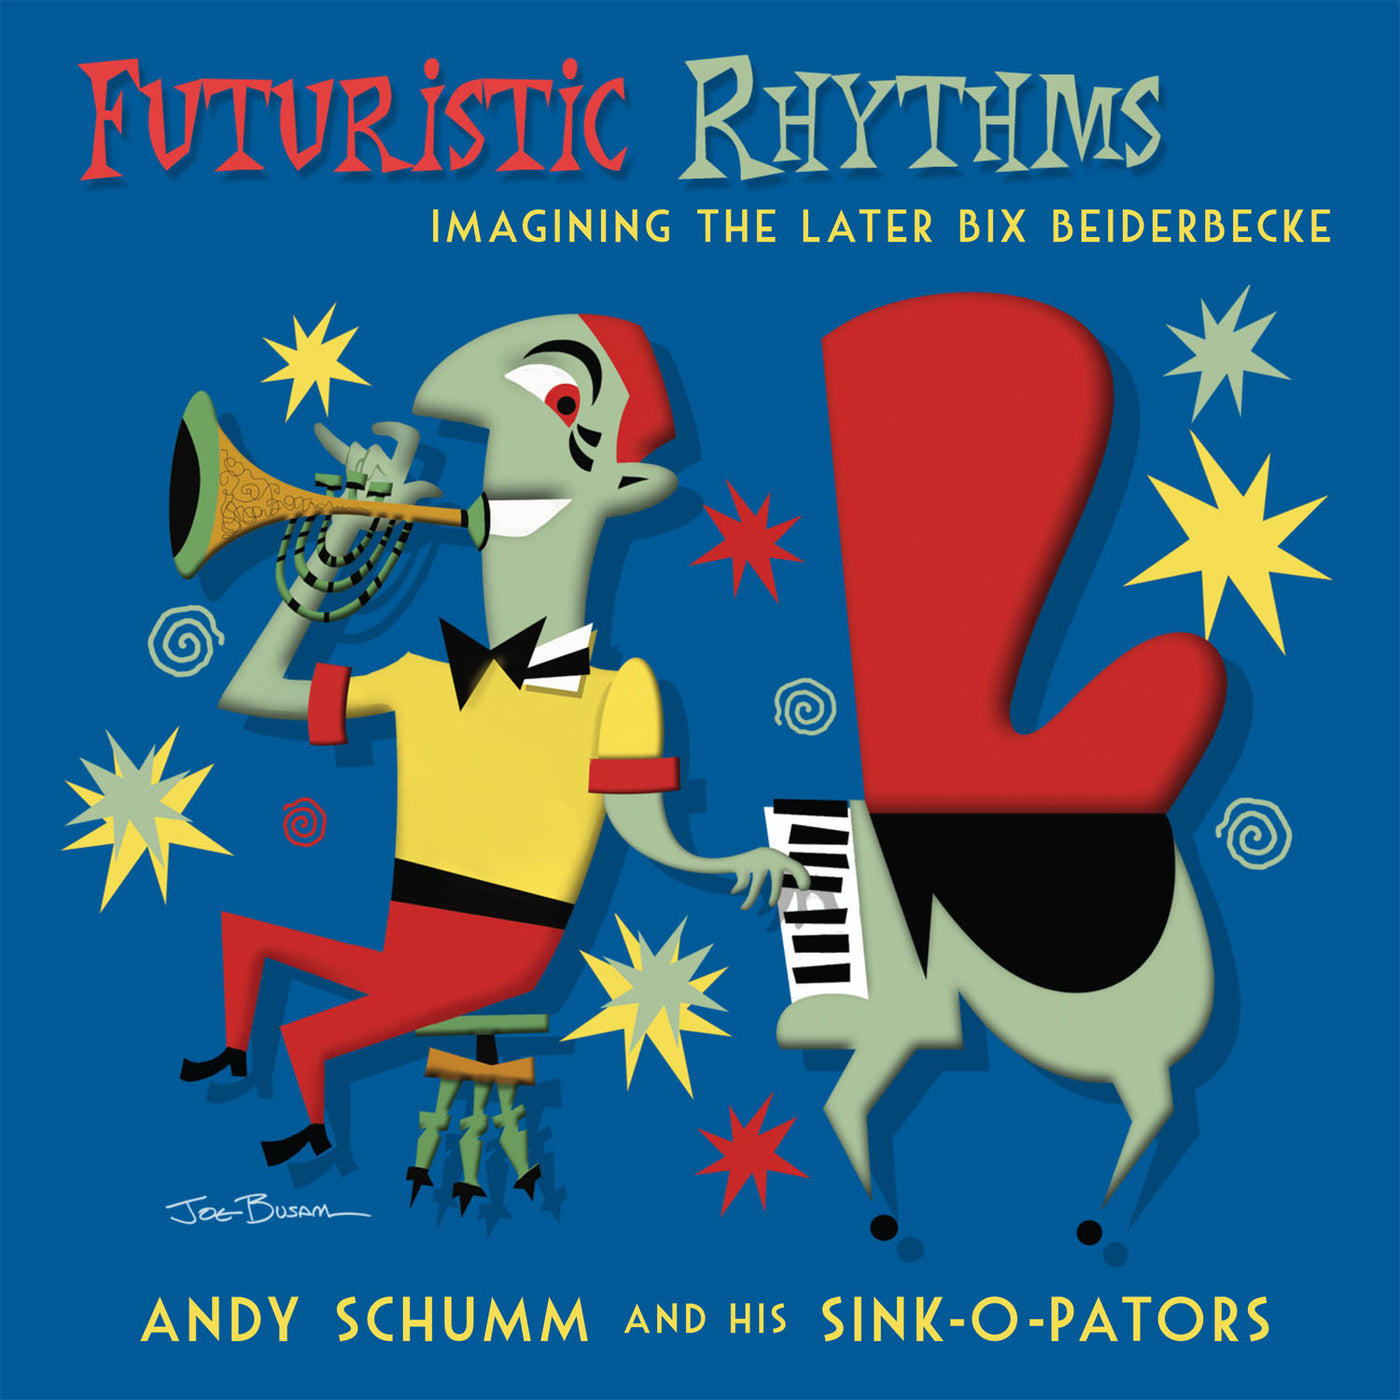 Futuristic Rhythms: Imagining the Later Bix Beiderbecke